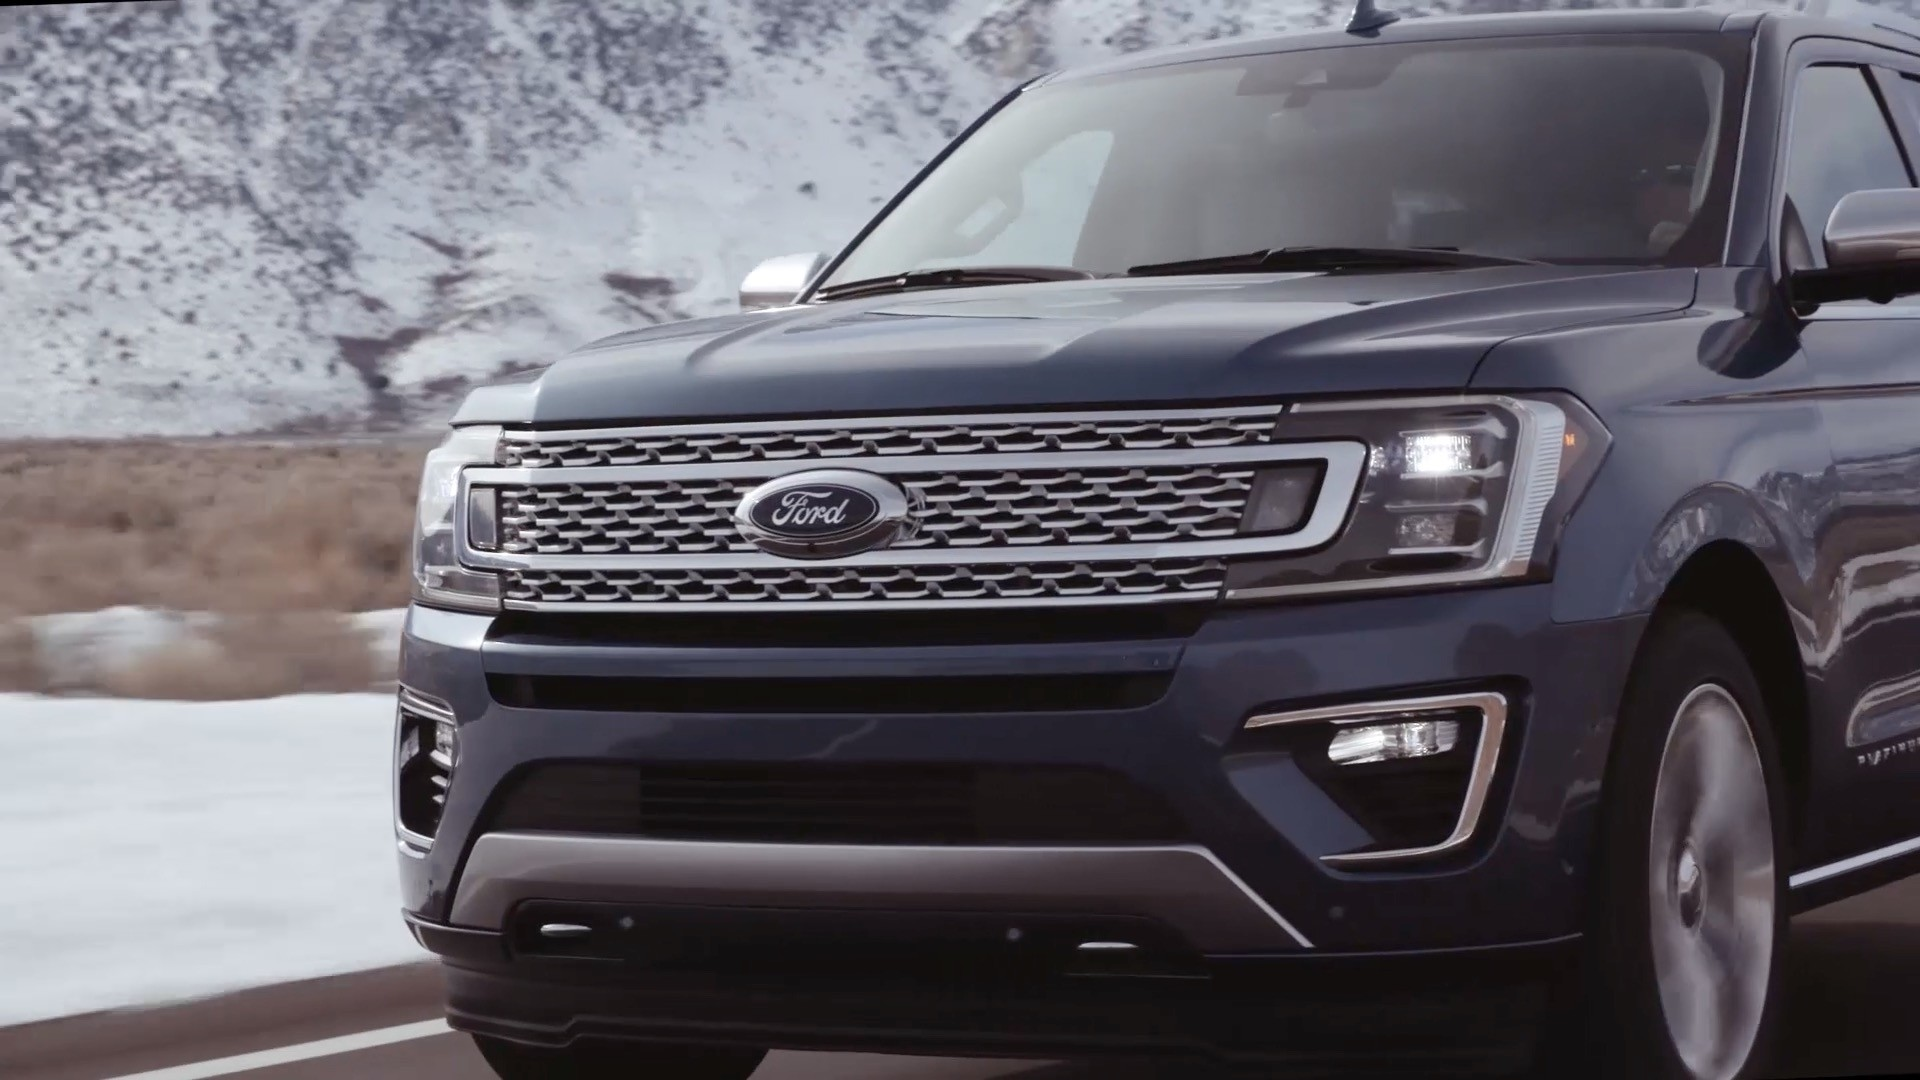 2018 ford expedition exterior bubuku. Black Bedroom Furniture Sets. Home Design Ideas